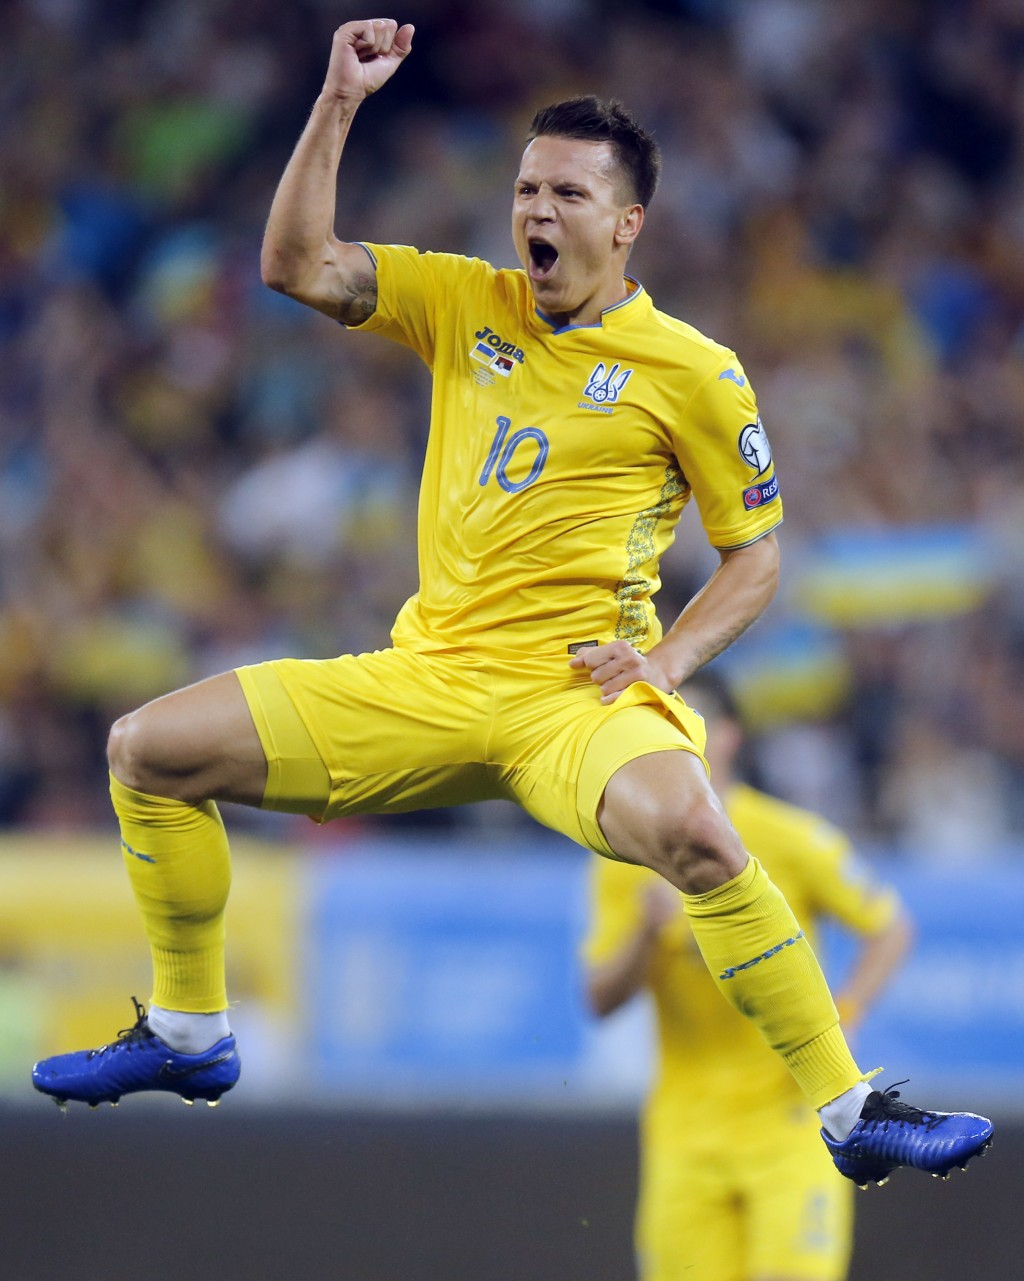 Ukraine's Yevhen Konoplyanka celebrates after scoring his side's fifth goal during the Euro 2020 group B qualifying soccer match between Ukraine and S...